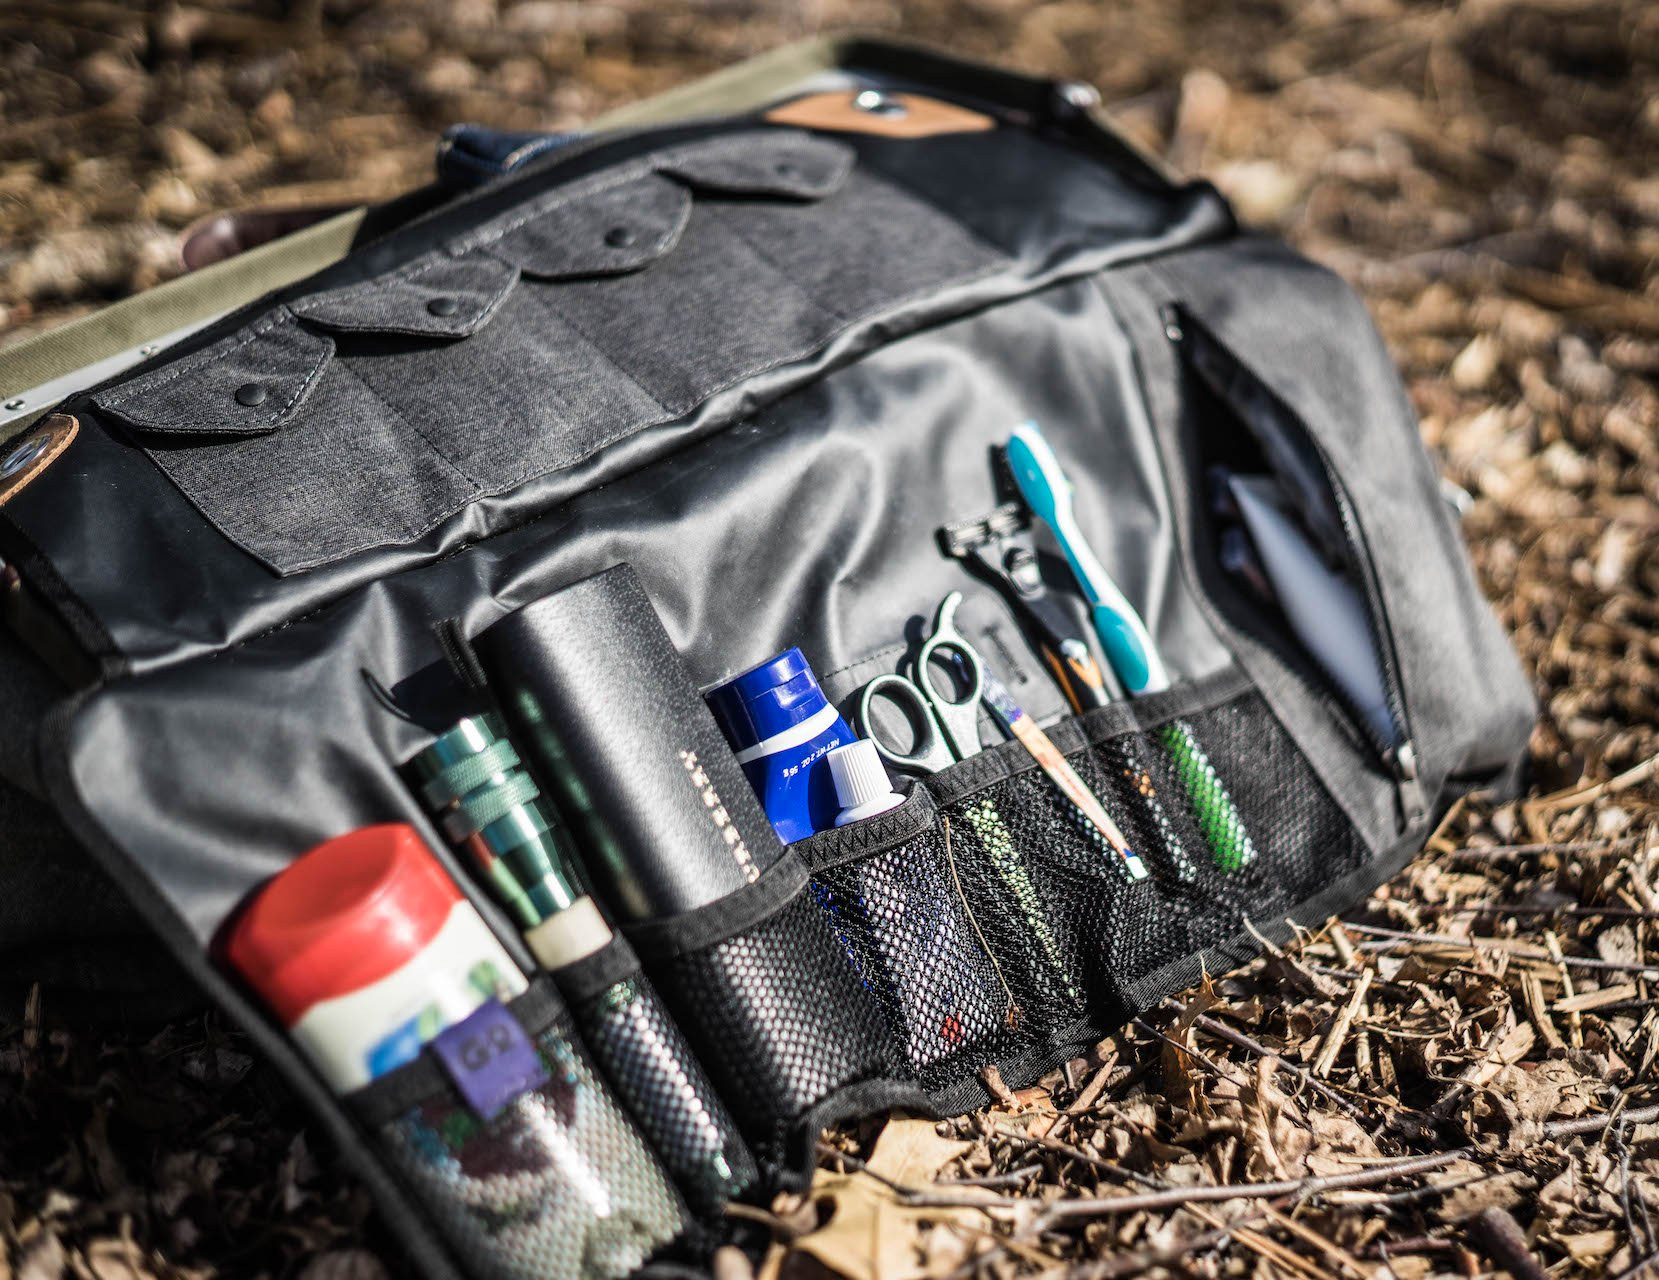 The Tashtego 2.0 is a Tool Roll for Toiletries at werd.com